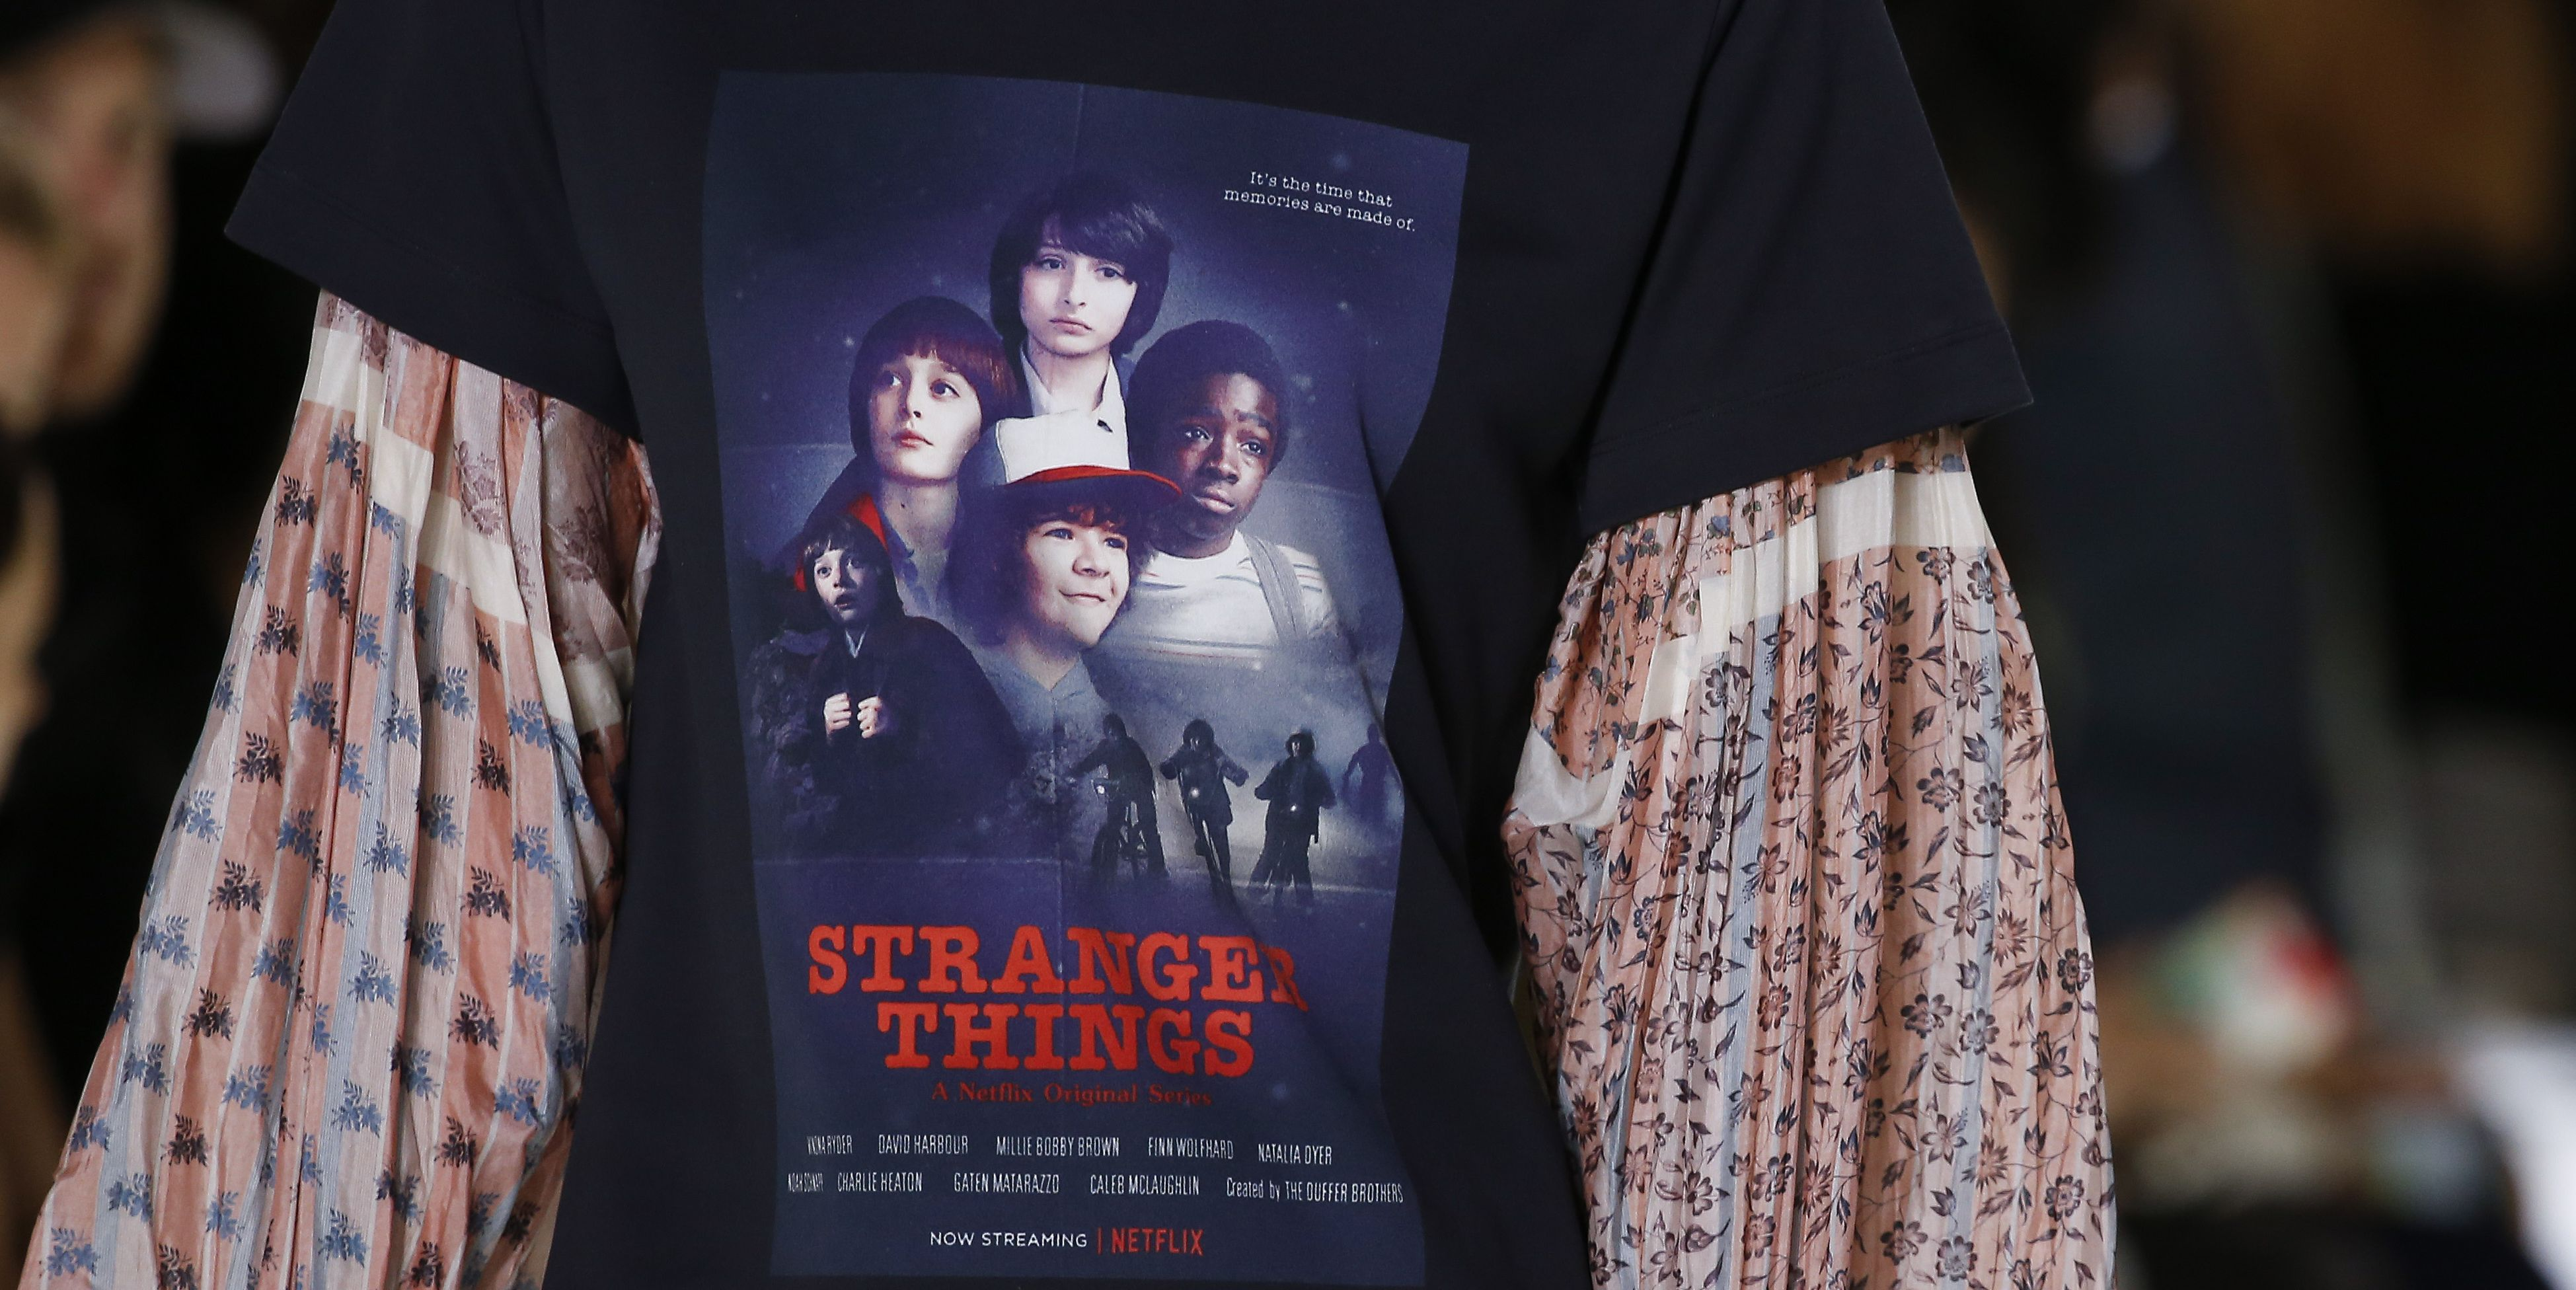 louis vuitton, camiseta, stranger things, netflix, serie, camiseta stranger things, louis vuitton stranger things, t-shirt, camiseta serie, camiseta merchandising, serie netflix